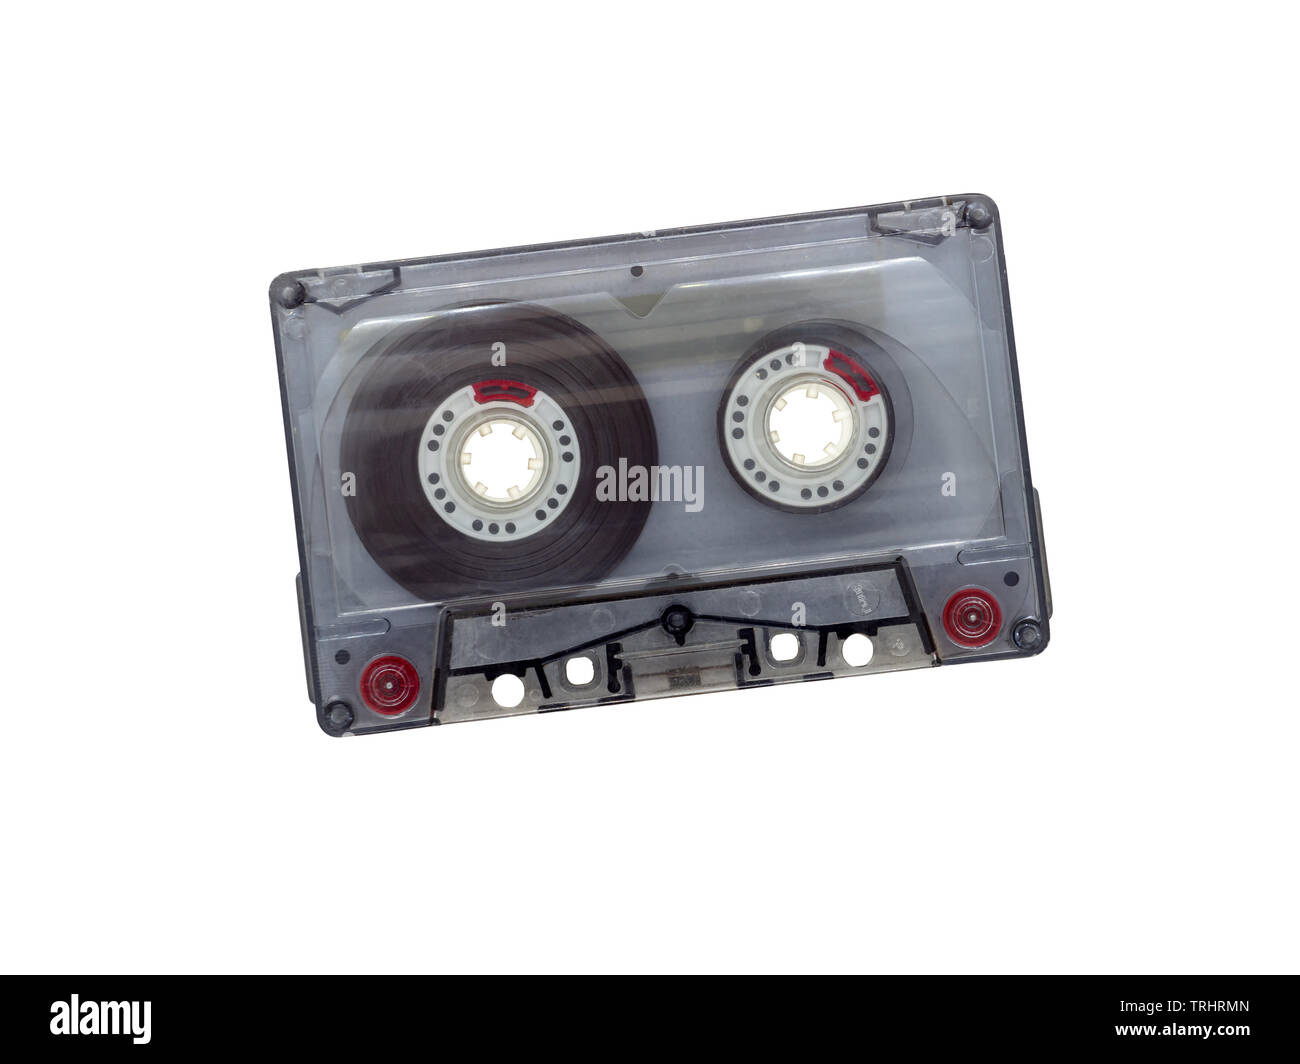 Transparent cassette tape (Compact Cassette, Compact Audio Cassette, Musicassette (MC)) isolate on white background - Stock Image